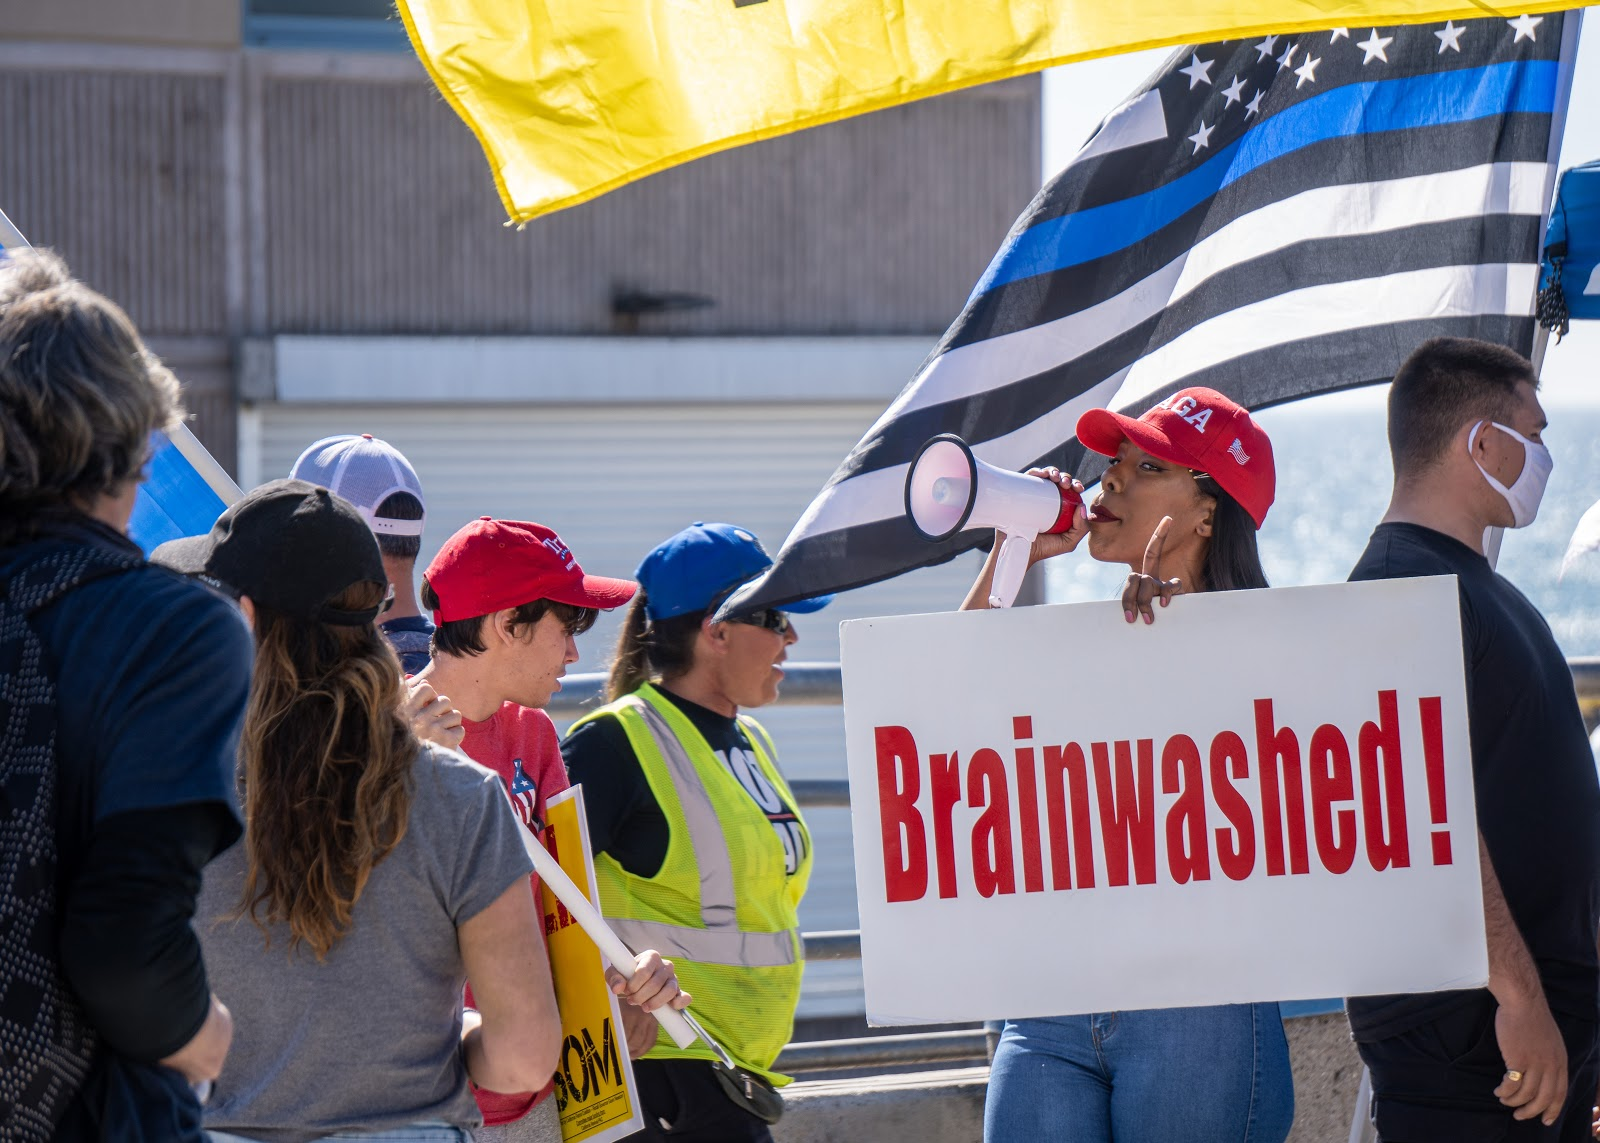 there is a dark skinned maskless woman wearing a maga hat and holding up a white sign in one hand with red text that reads 'Brainwashed!' and the other hand holds a small megaphone at the end. there is a thin blue line flag held by a man wearing a white mask there is the edge of a yellow flag above the thin blue line flag to the left of those two people are several maskless people, some looking towards the person holding th megaphone, others facing away